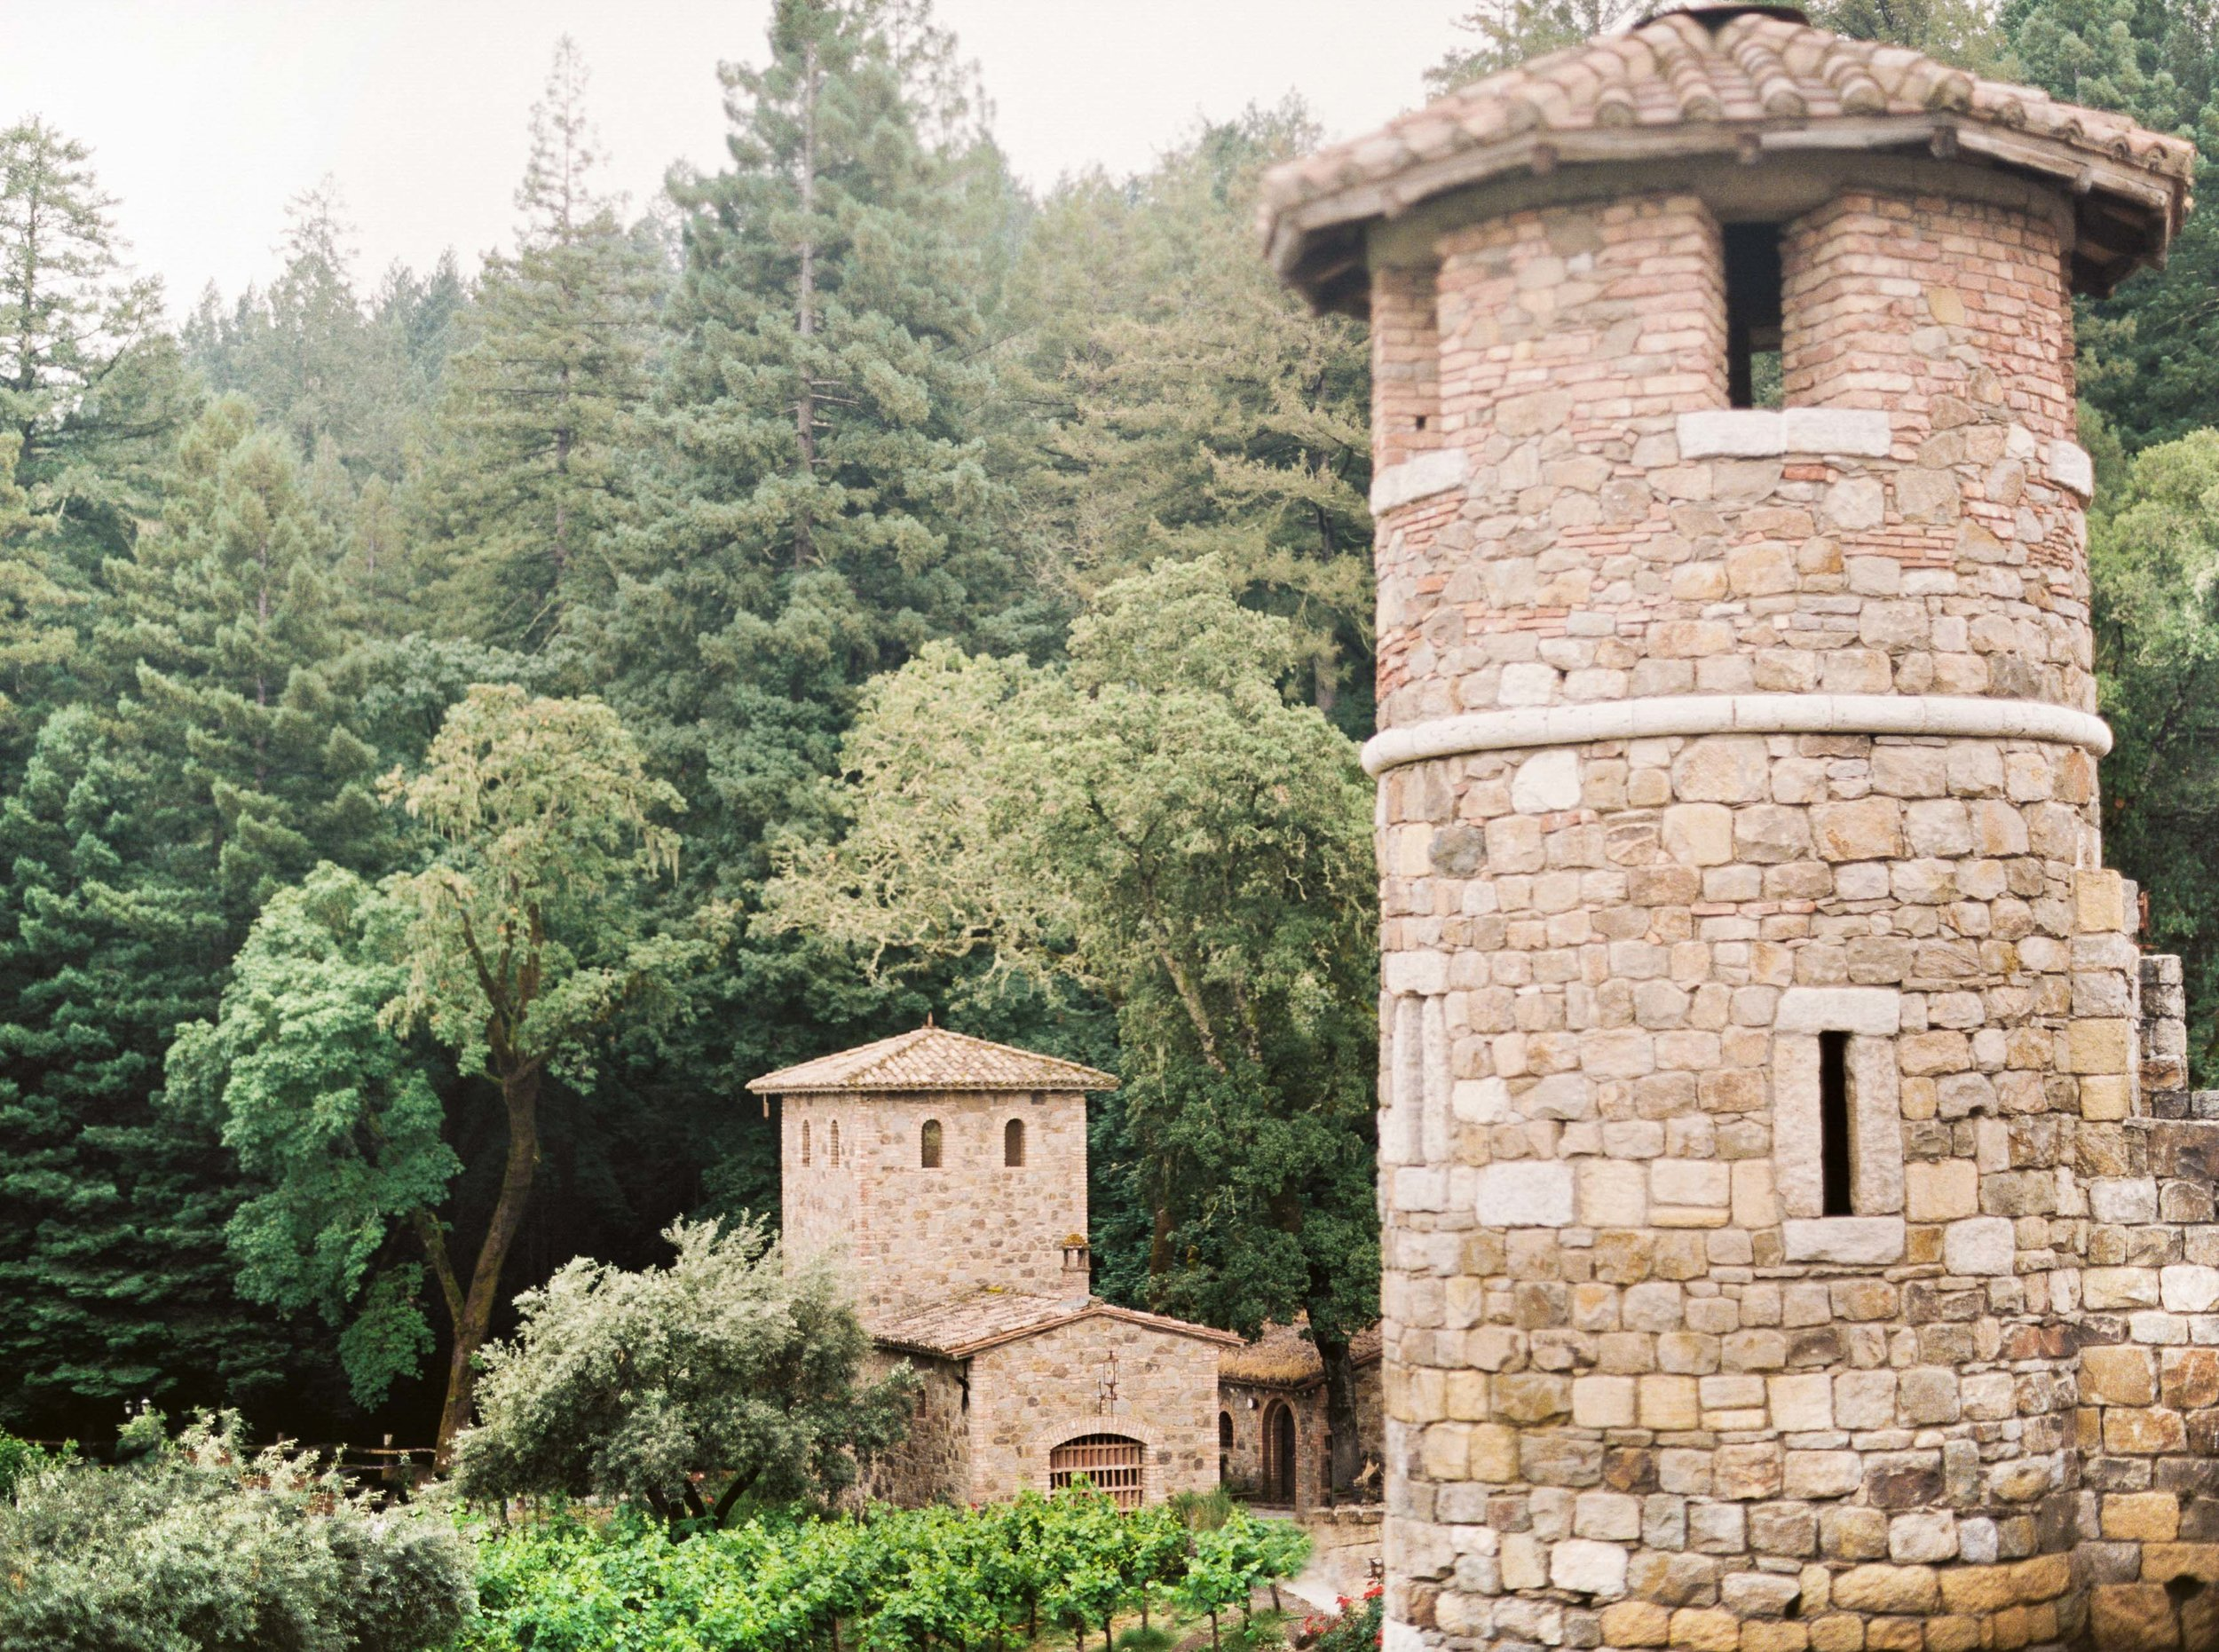 045napa_wedding_photographer_and_videographer_destination_and_elopement_photography.jpg